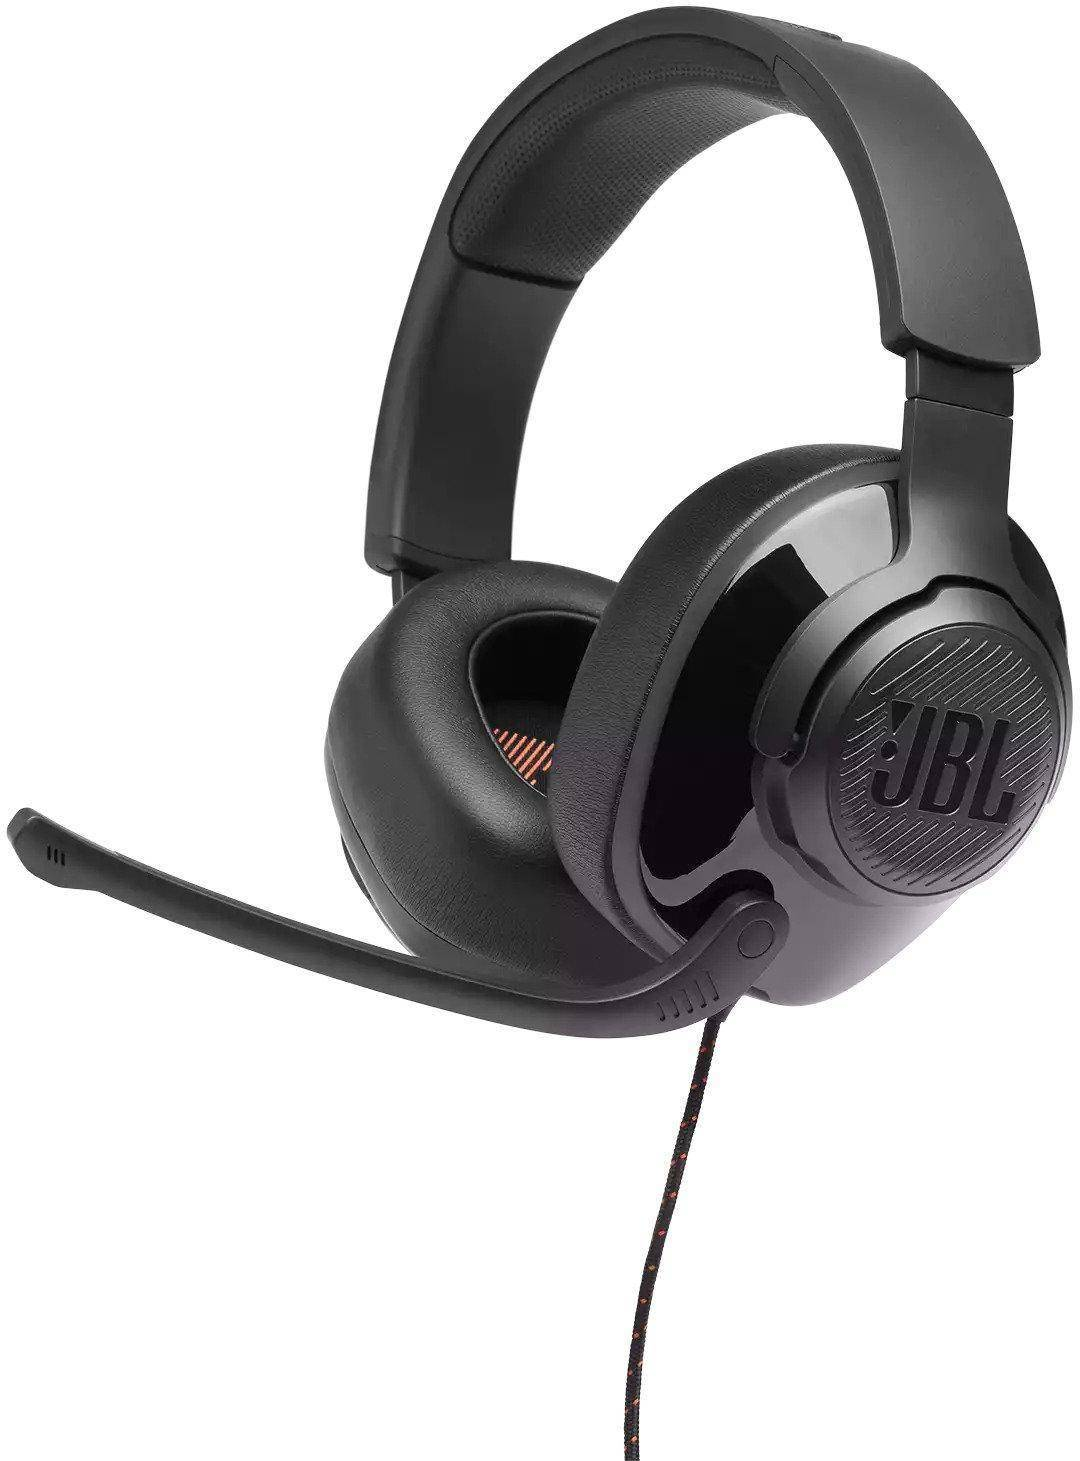 JBL Quantum 300 Wired Gaming Headset Over-Ear With Mic zoom image